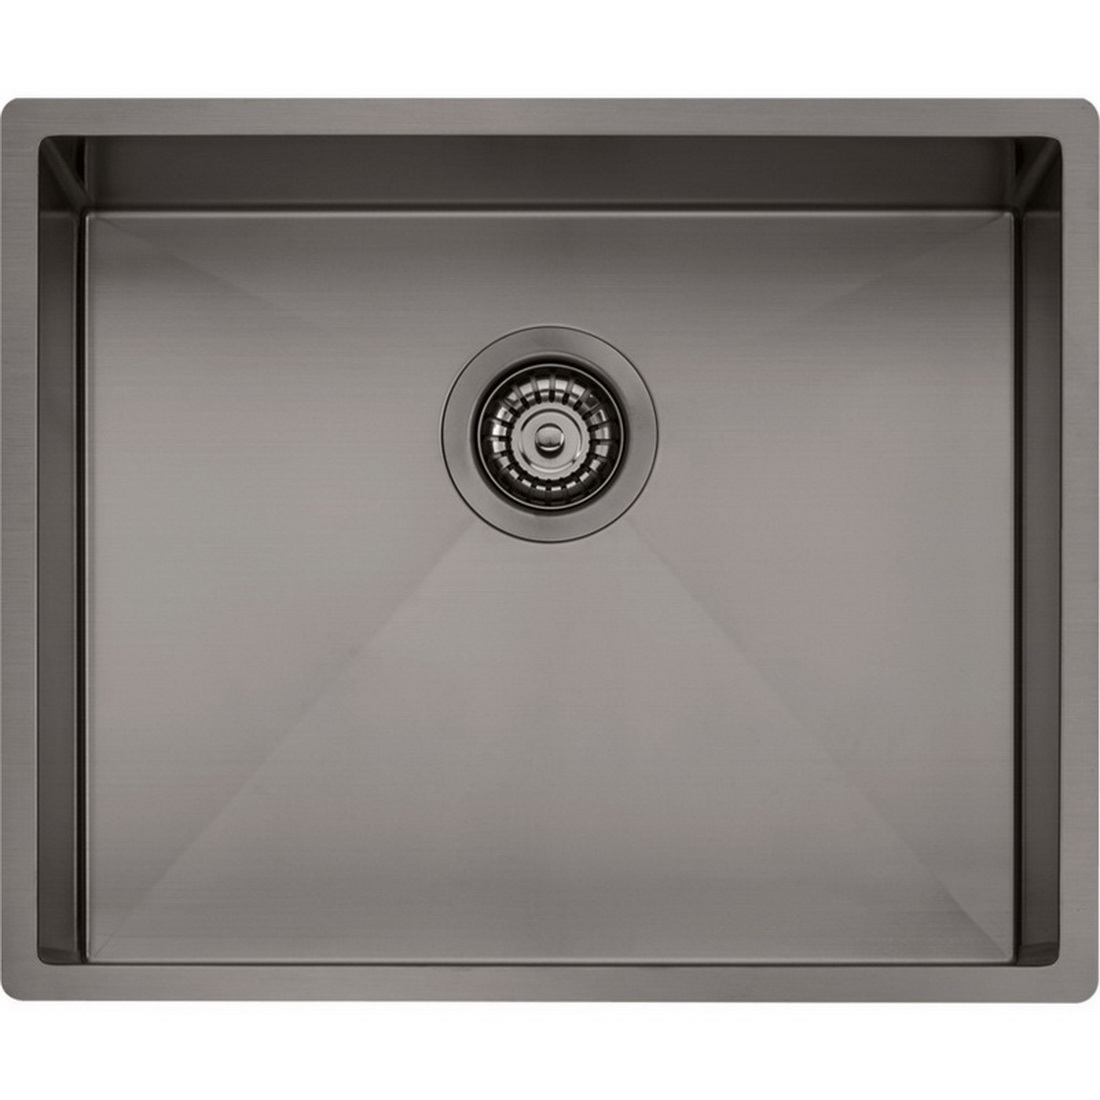 Spectra Single Sink Bowl 445 x 540 mm Gun Metal Topmount/Undermount/Flushmount SB50GM